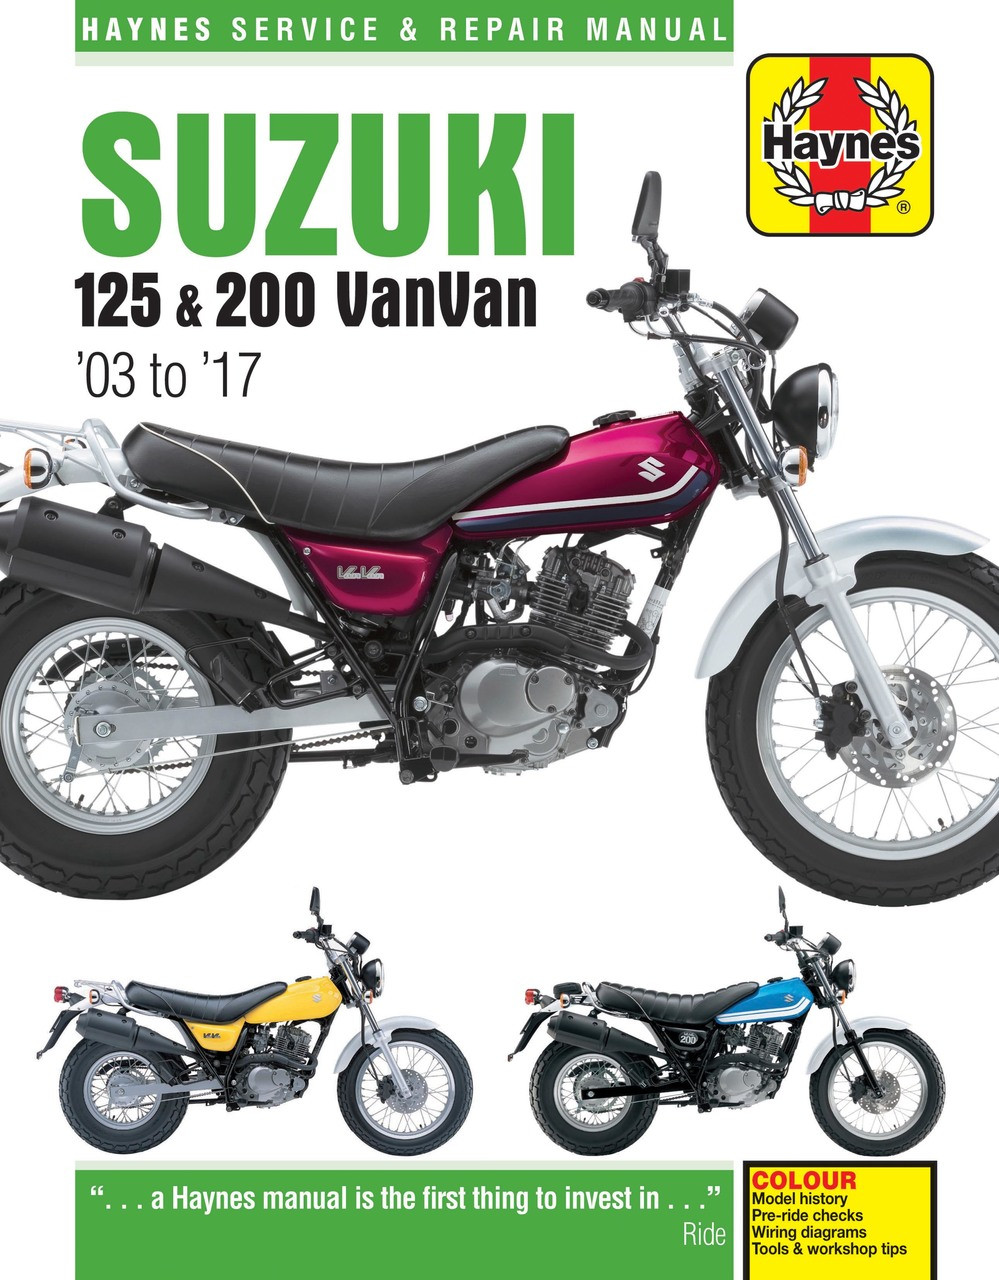 suzuki rv125 rv200 vanvan 2003 2017 workshop manual suzuki rv 125 wiring diagram suzuki rv 125 wiring diagram [ 999 x 1280 Pixel ]